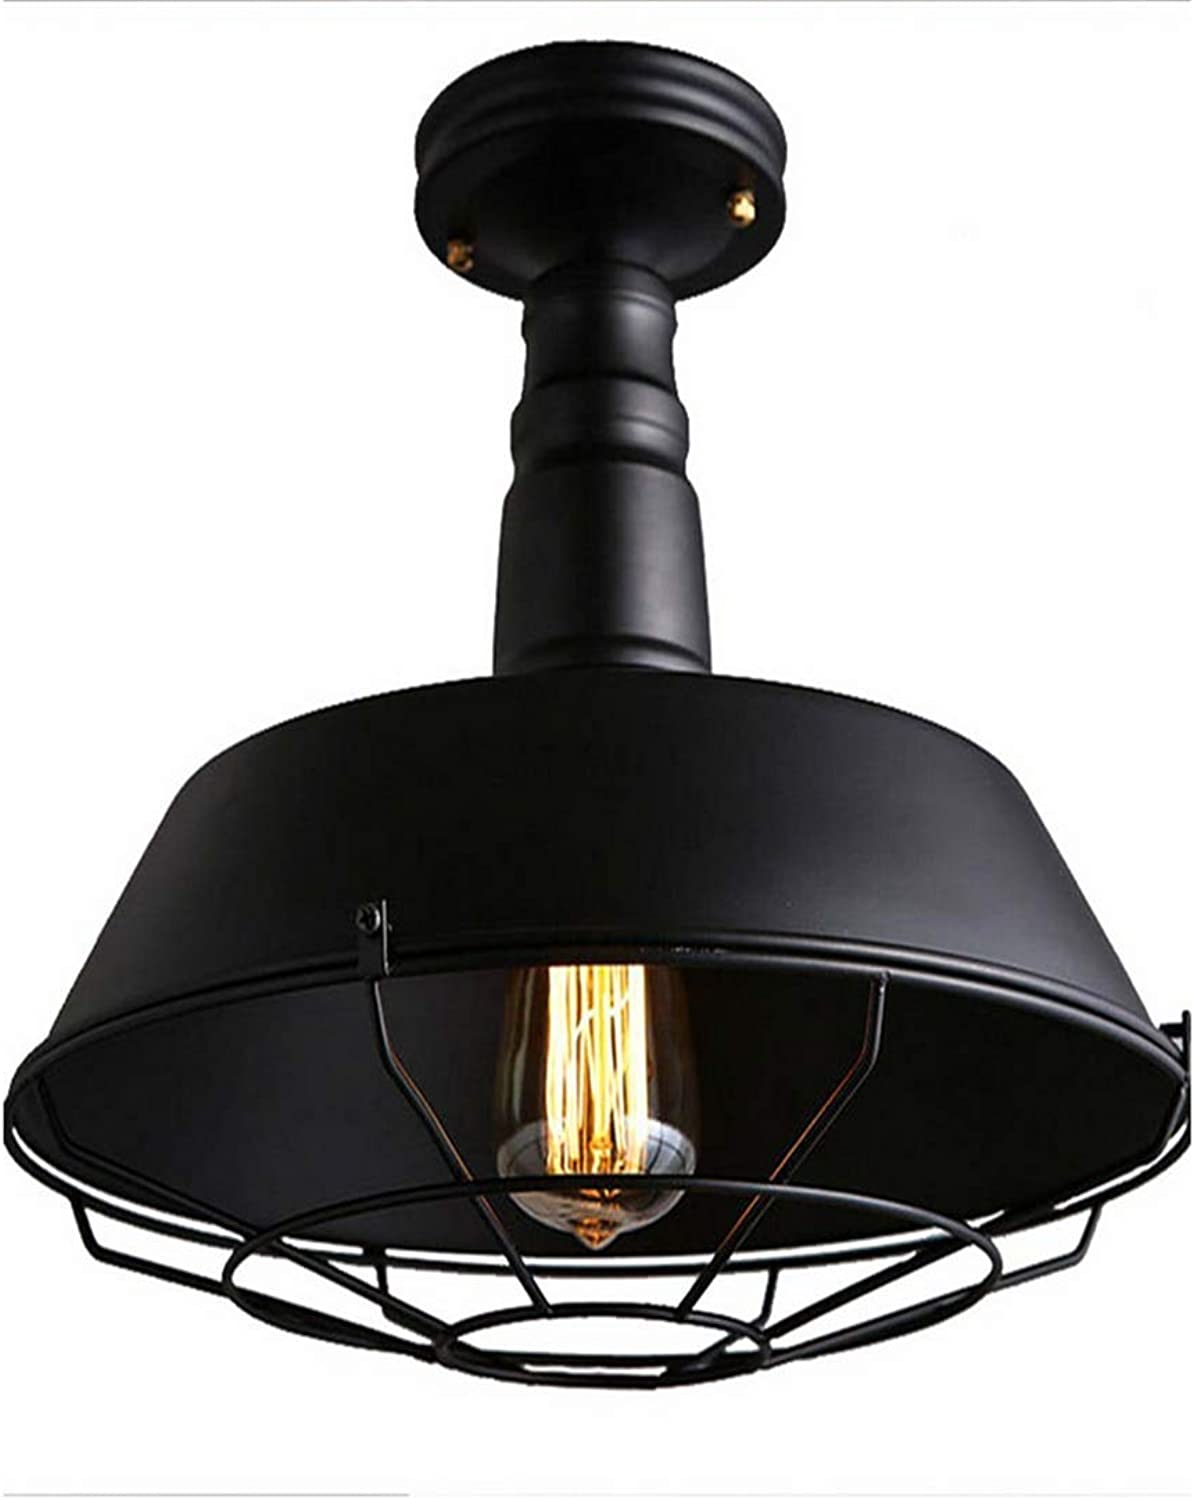 Lichtvintage Industrial Metal Ceiling Light,Simple Art Iron Matt E27 Decor Ceiling Lamp With Flush Mount For Living Room Dining Room